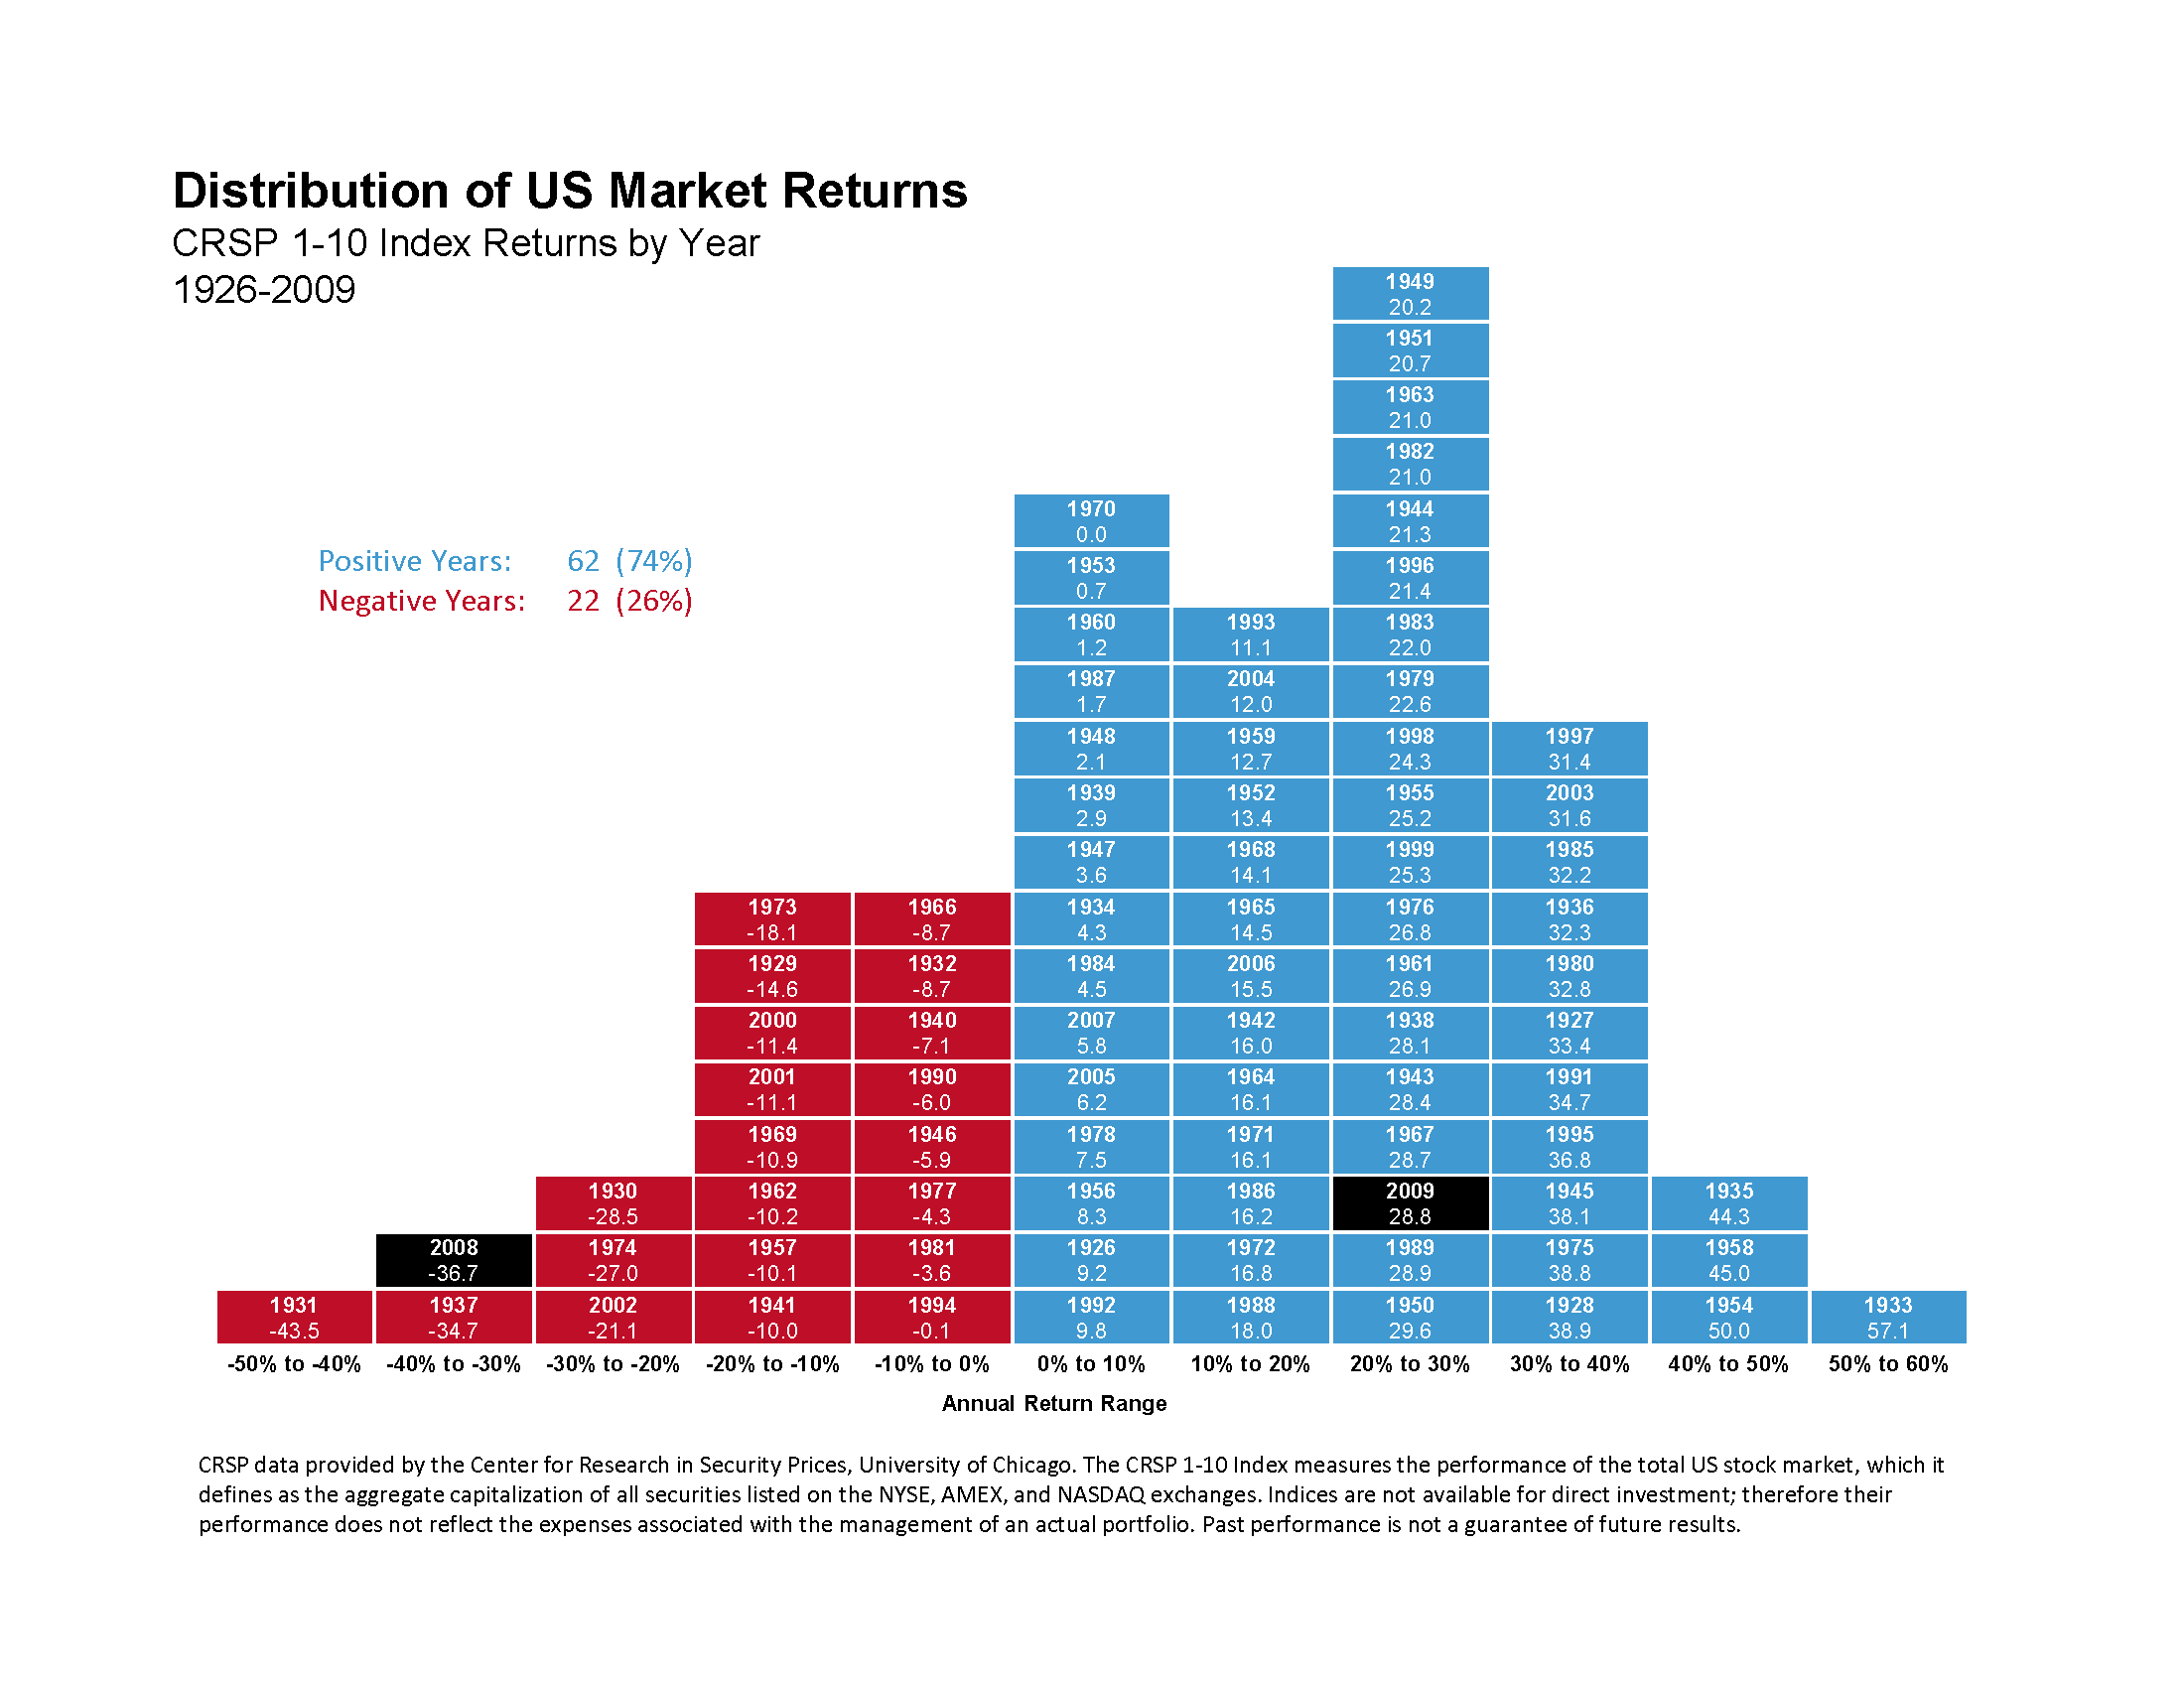 Distribution of US Market Returns Infographic